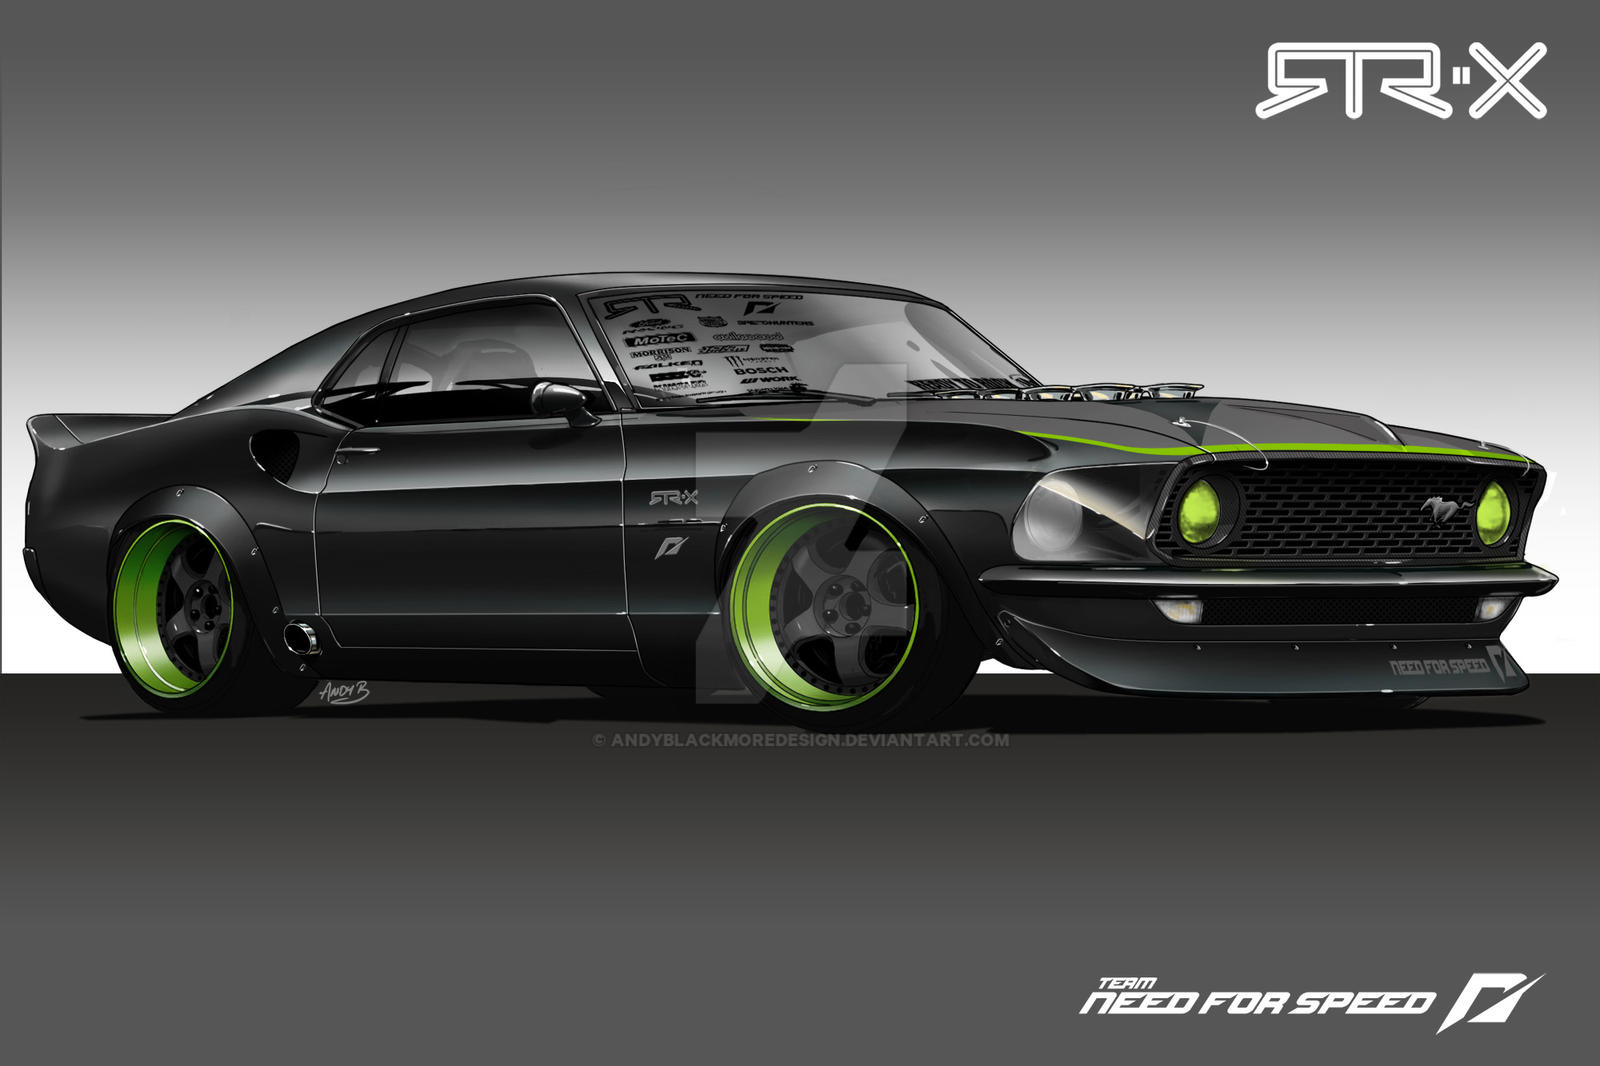 Mustang Rtr X Concept Renders By Andyblackmoredesign On Deviantart